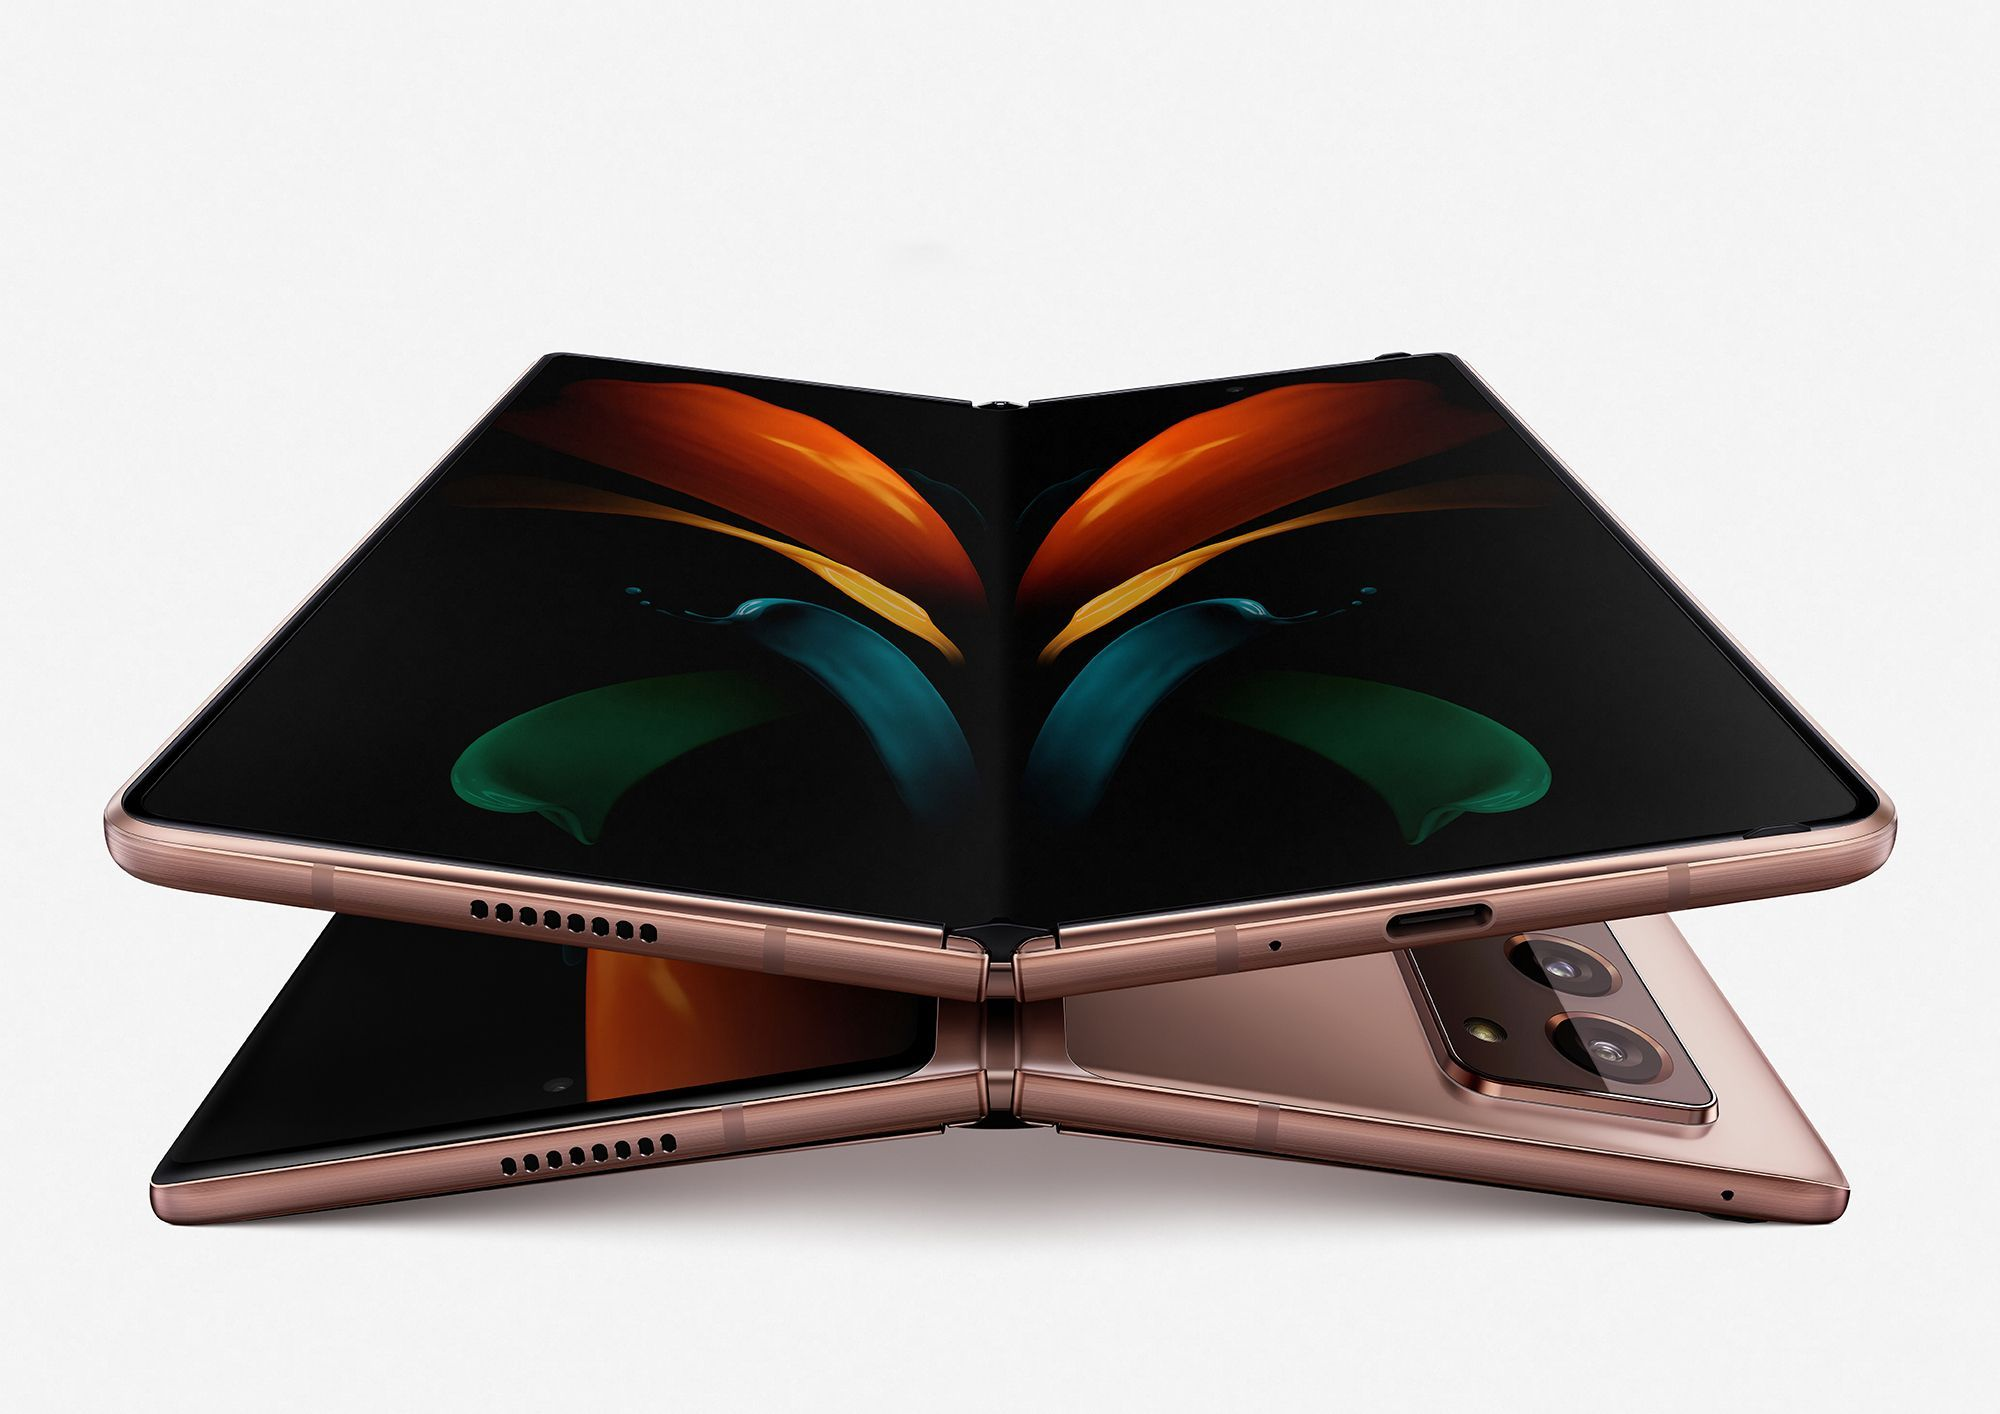 Is The Samsung Galaxy Z Fold2 For You?